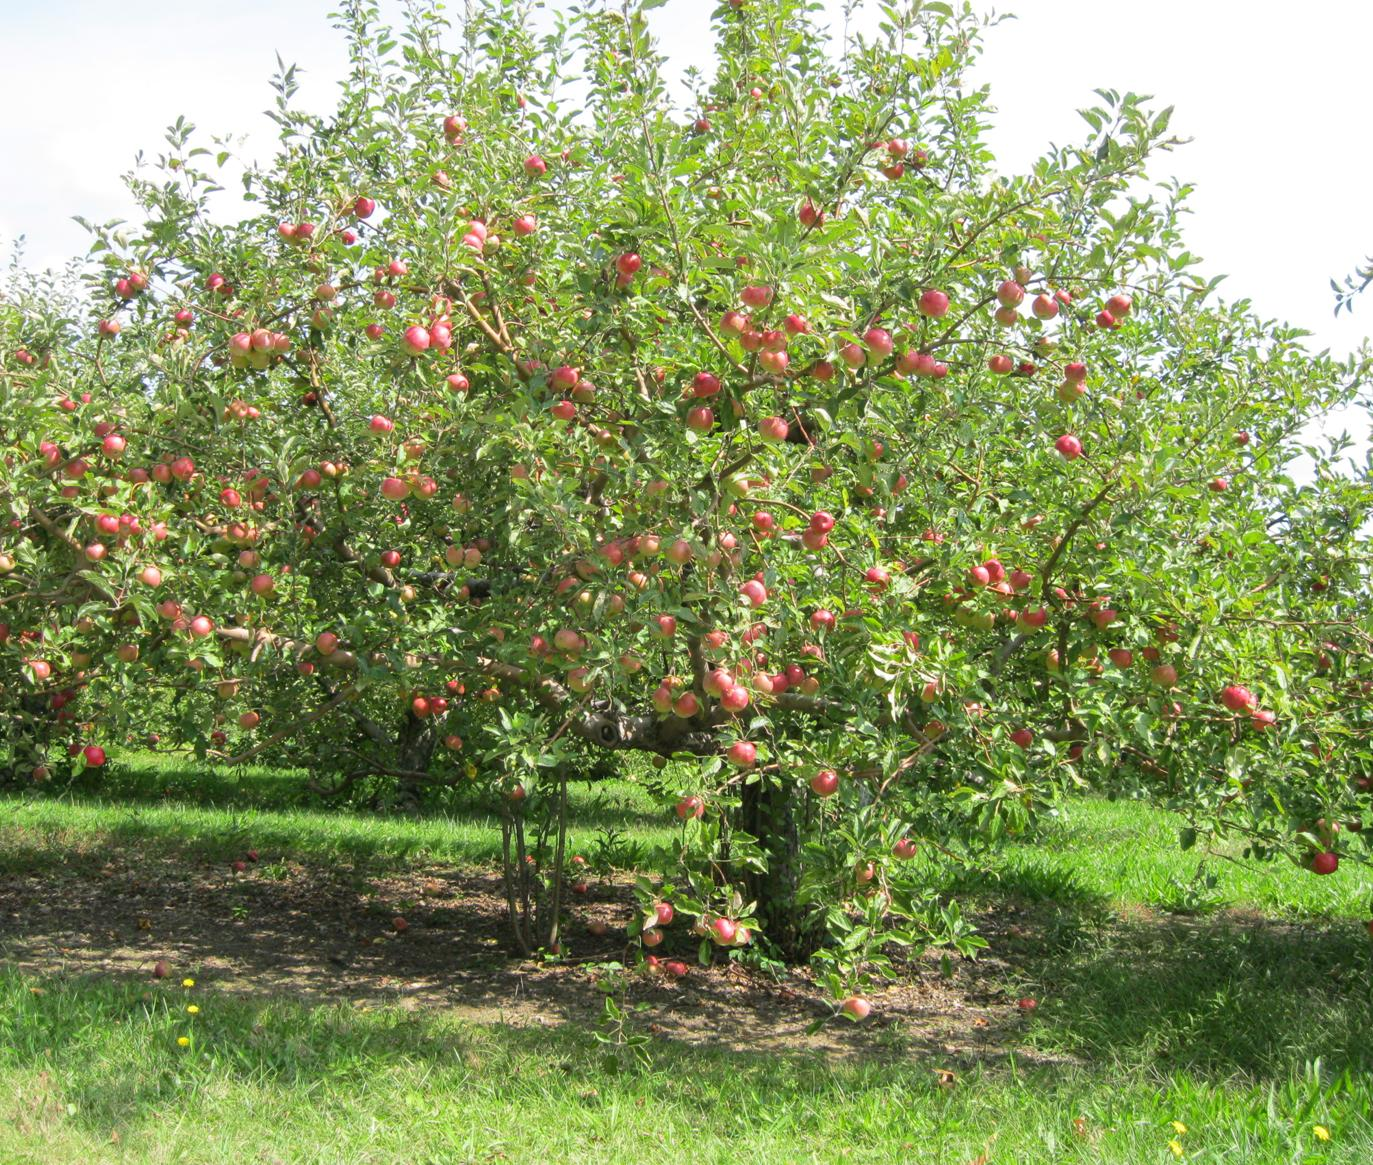 Road Trip: Apple Picking at Horseshoe Orchards